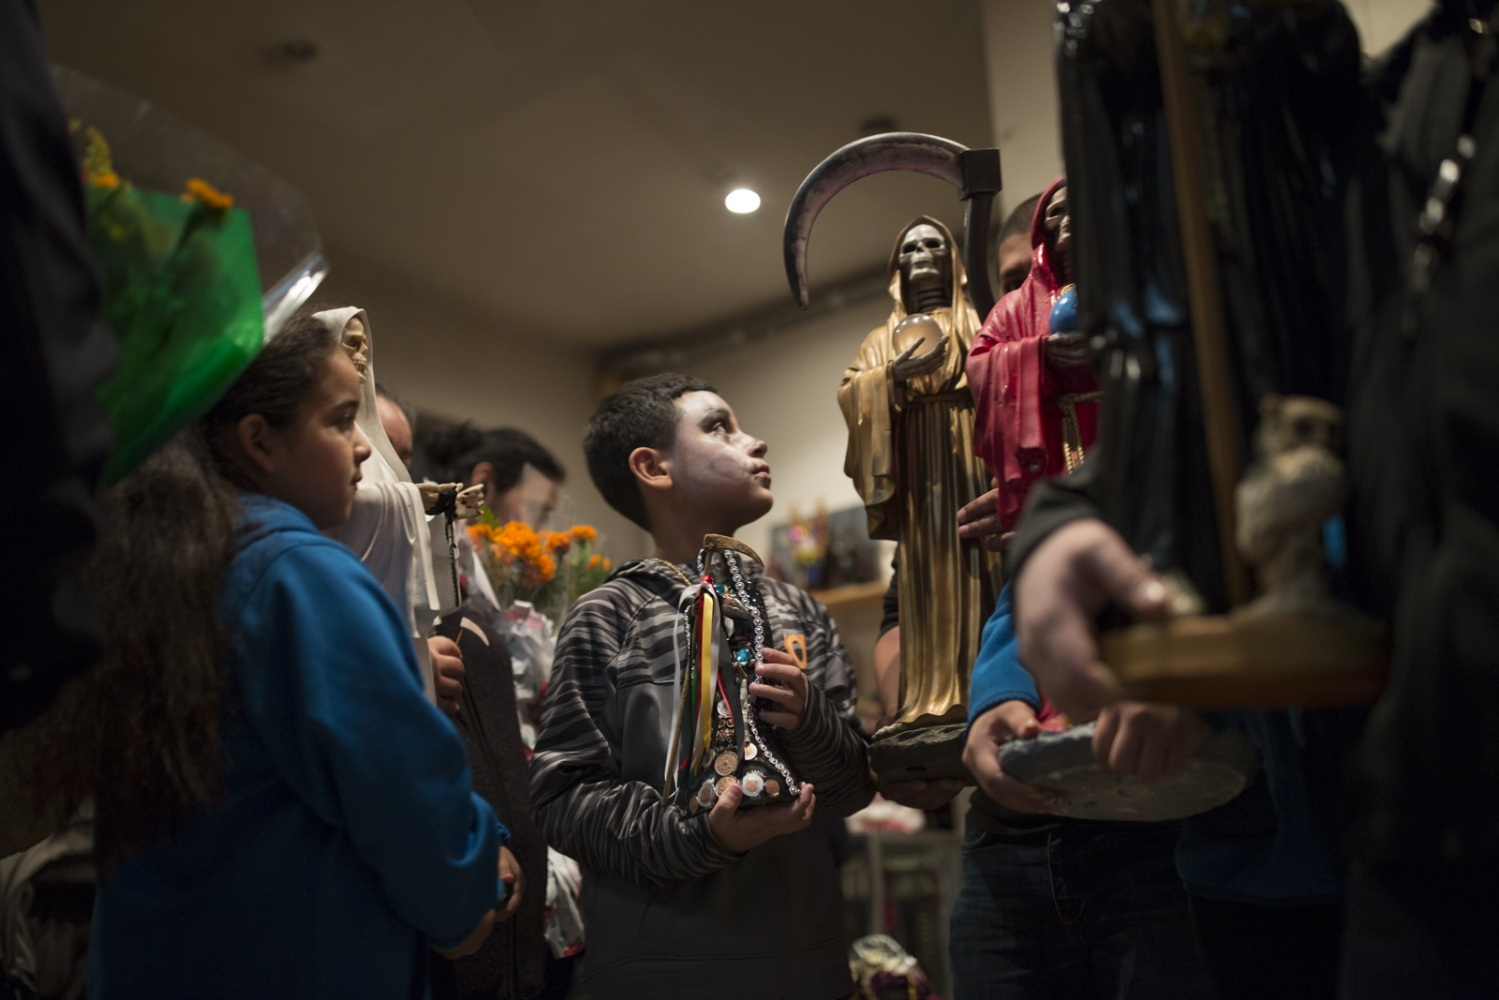 Santa Muerte devotees and their children gather at a botanica in Queens to march in honor of the saint as part of their Day of the Dead annual celebration.